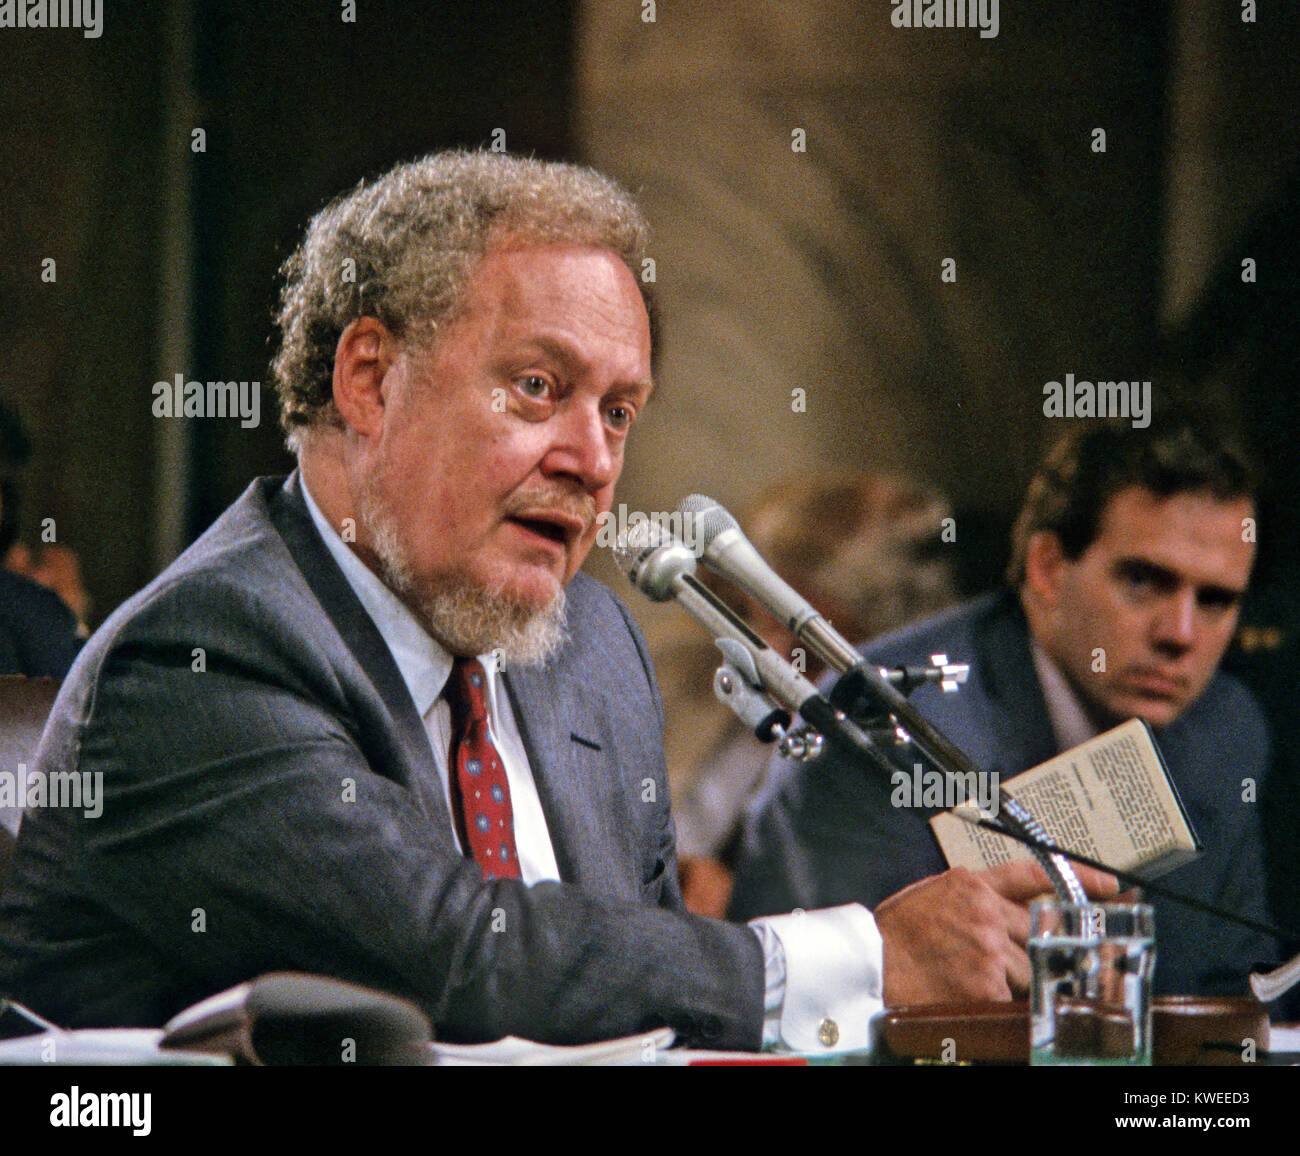 Judge Robert H. Bork, United States President Ronald Reagan's nominee for Associate Justice of the U.S. Supreme - Stock Image